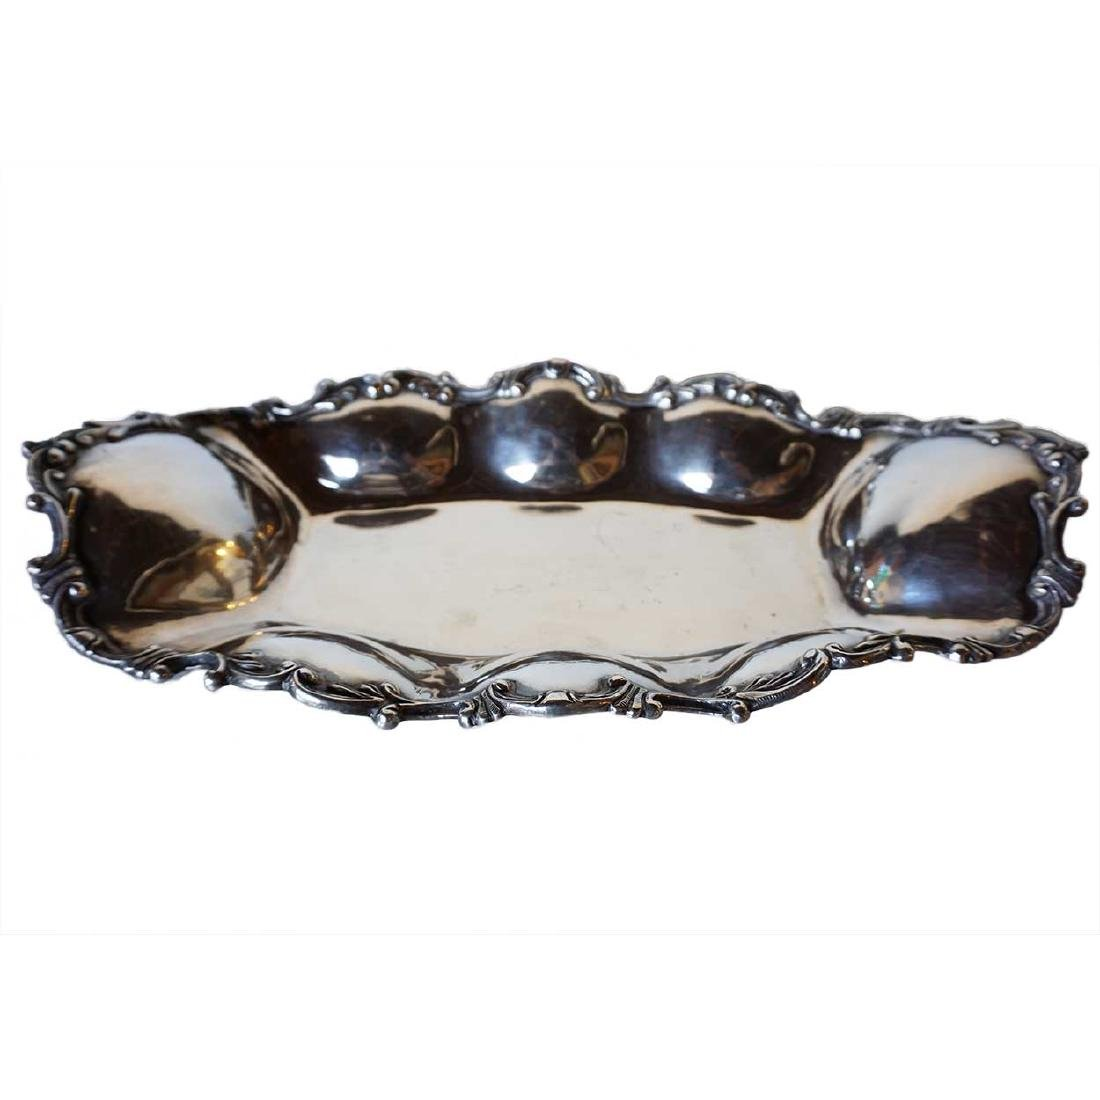 Vintage Mexican Sterling Silver Bread Tray